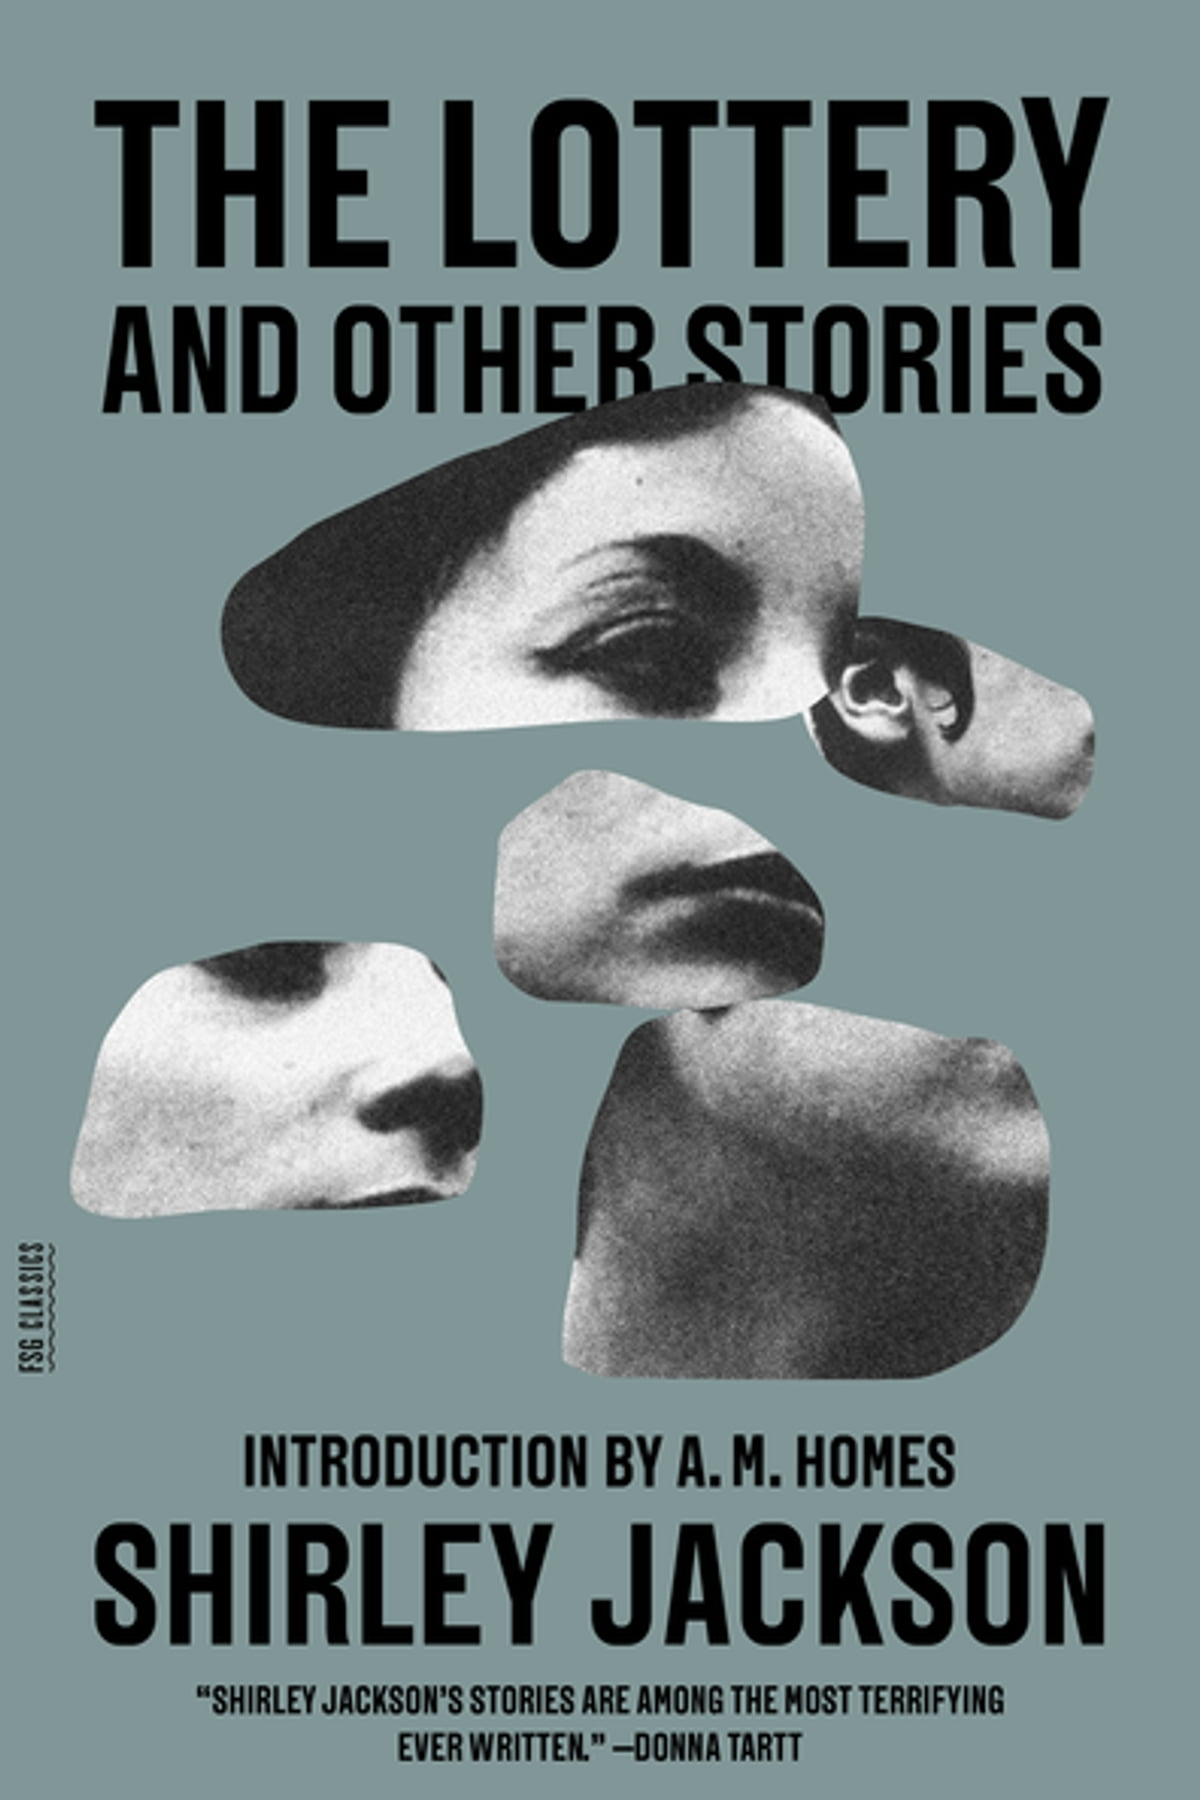 The Lottery And Other Stories Ebook By Shirley Jackson, A M Homes